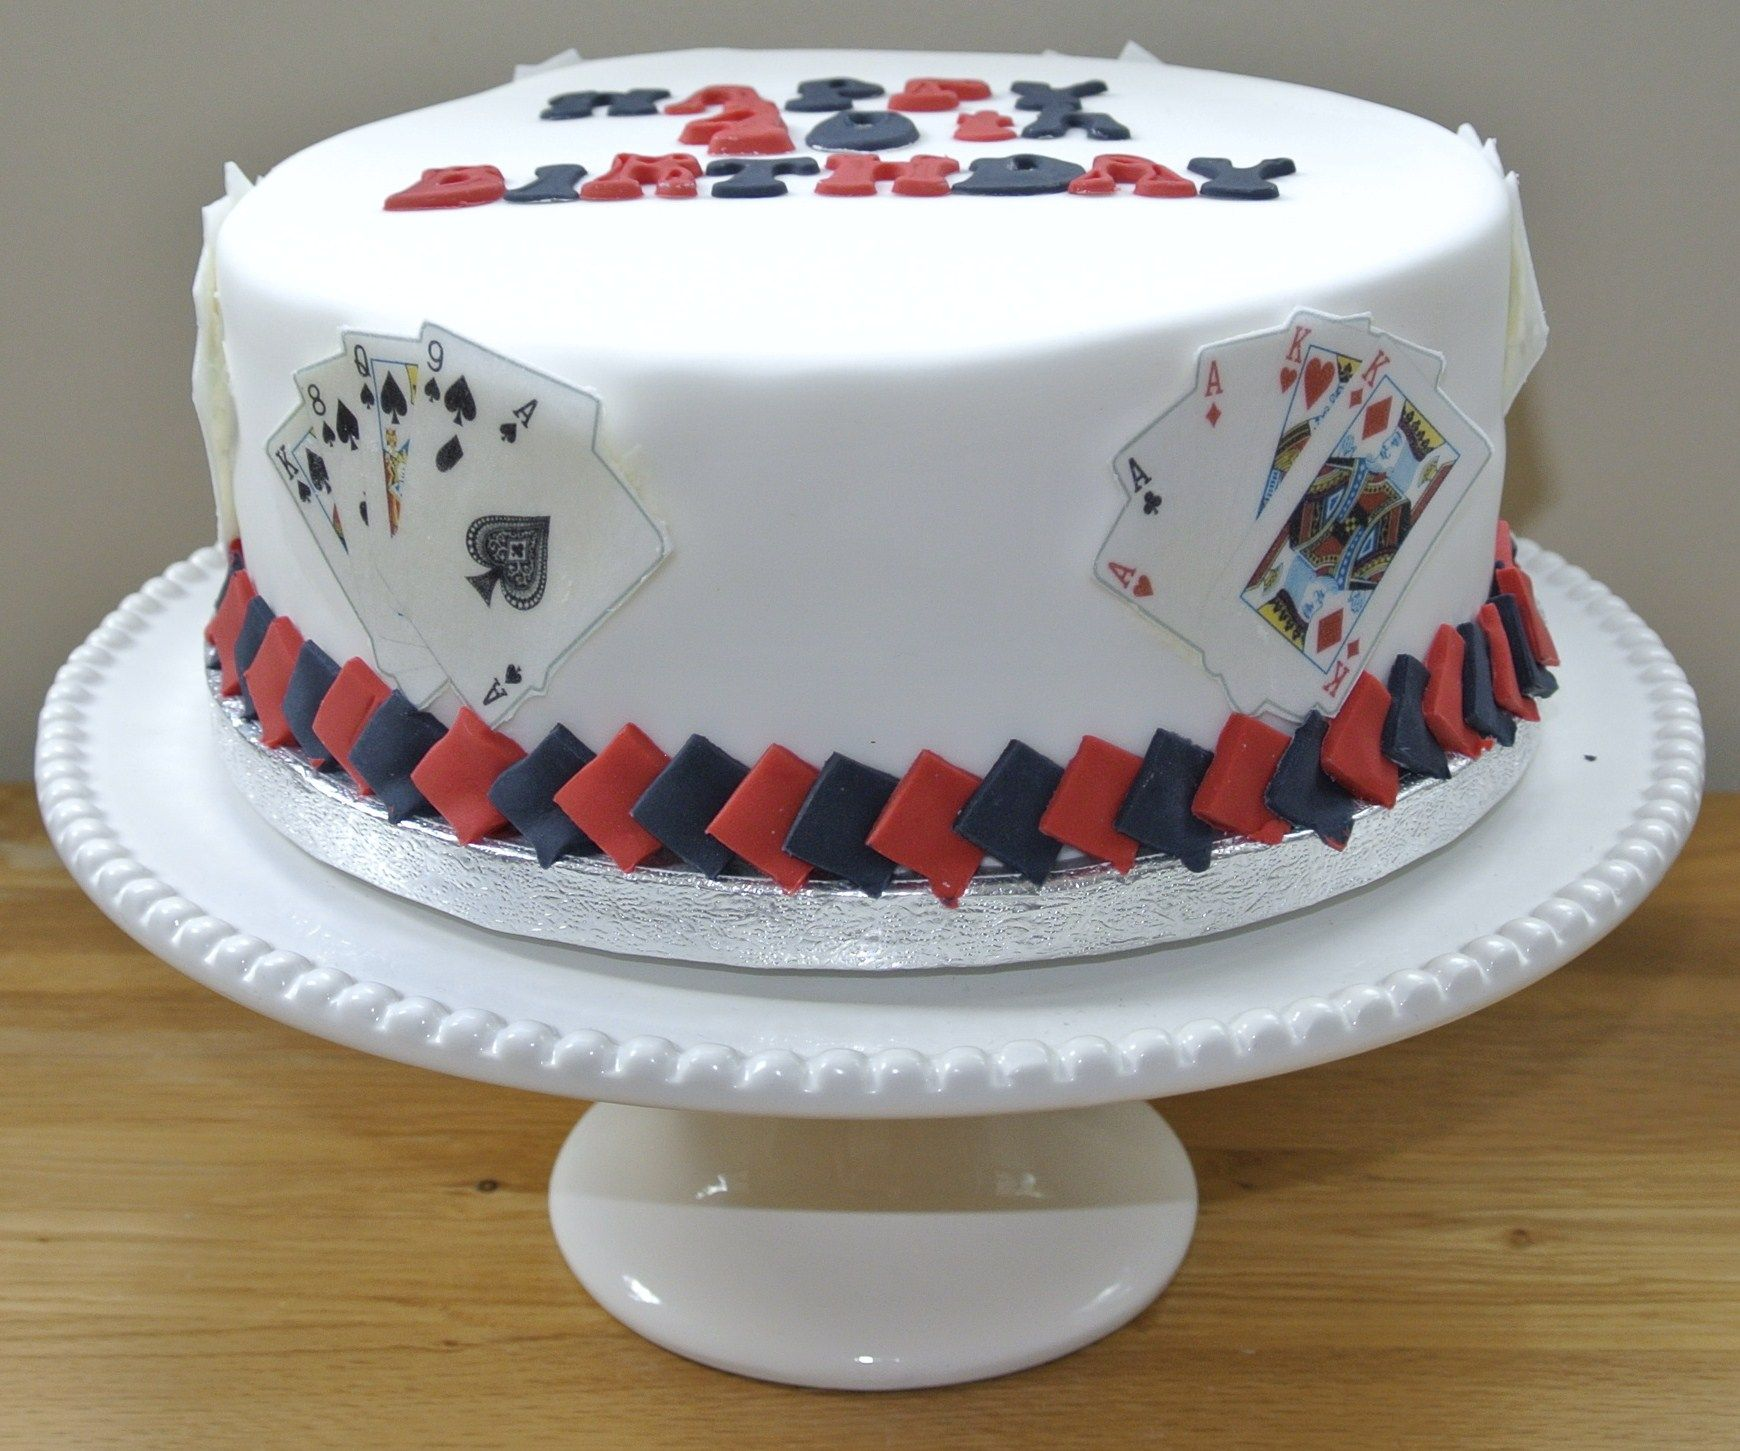 playing card cake, love itxPlaces and things I like ...